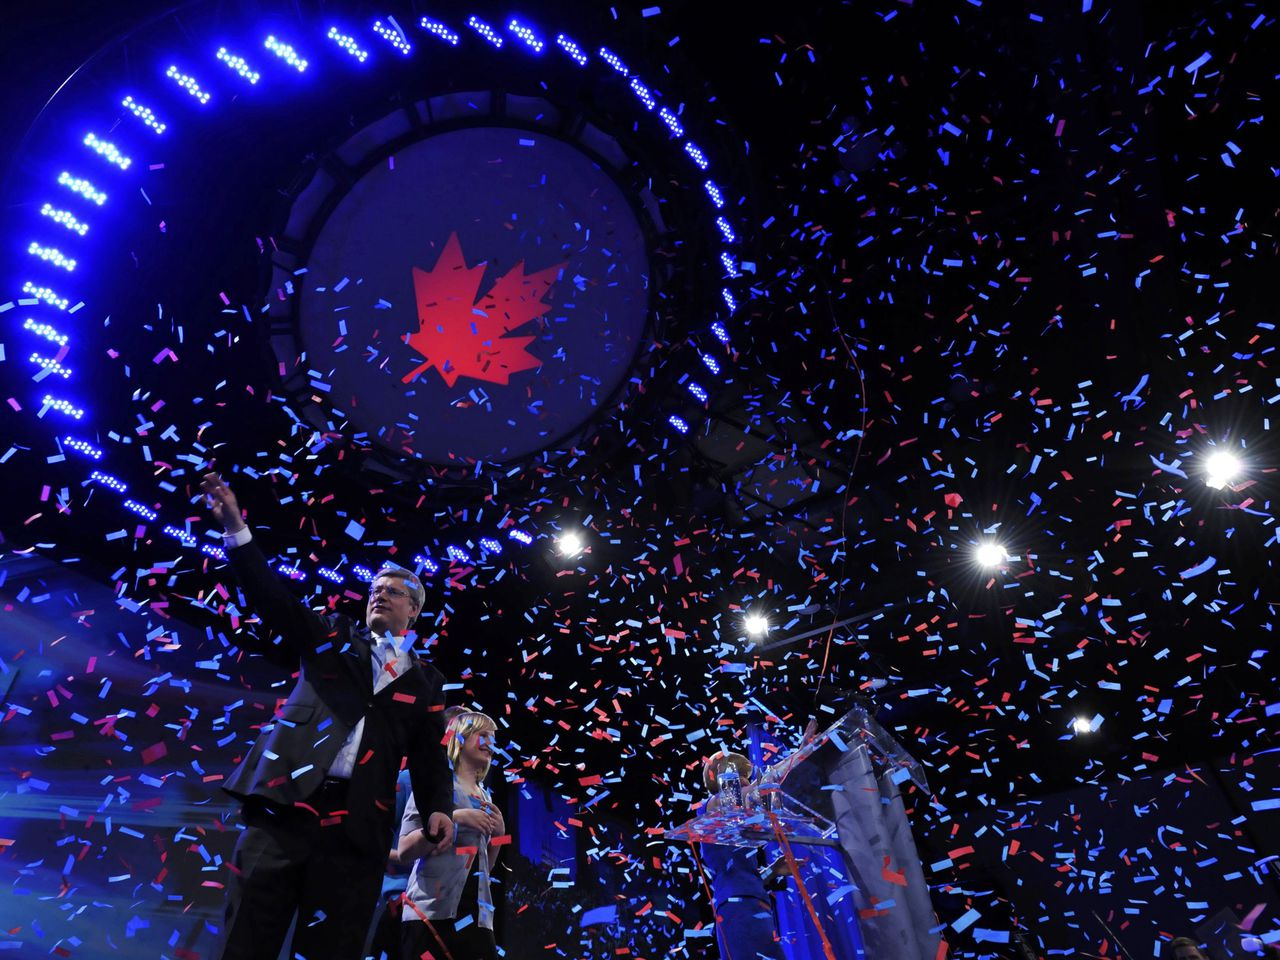 Conservative Party leader and Canadian Prime Minister Stephen Harper waves to supporters following his victory speech at his federal election night headquarters in Calgary, Alberta, May 2, 2011. With Harper are his son Ben and doughter Rachel. REUTERS/Todd Korol (CANADA - Tags: POLITICS ELECTIONS IMAGES OF THE DAY)